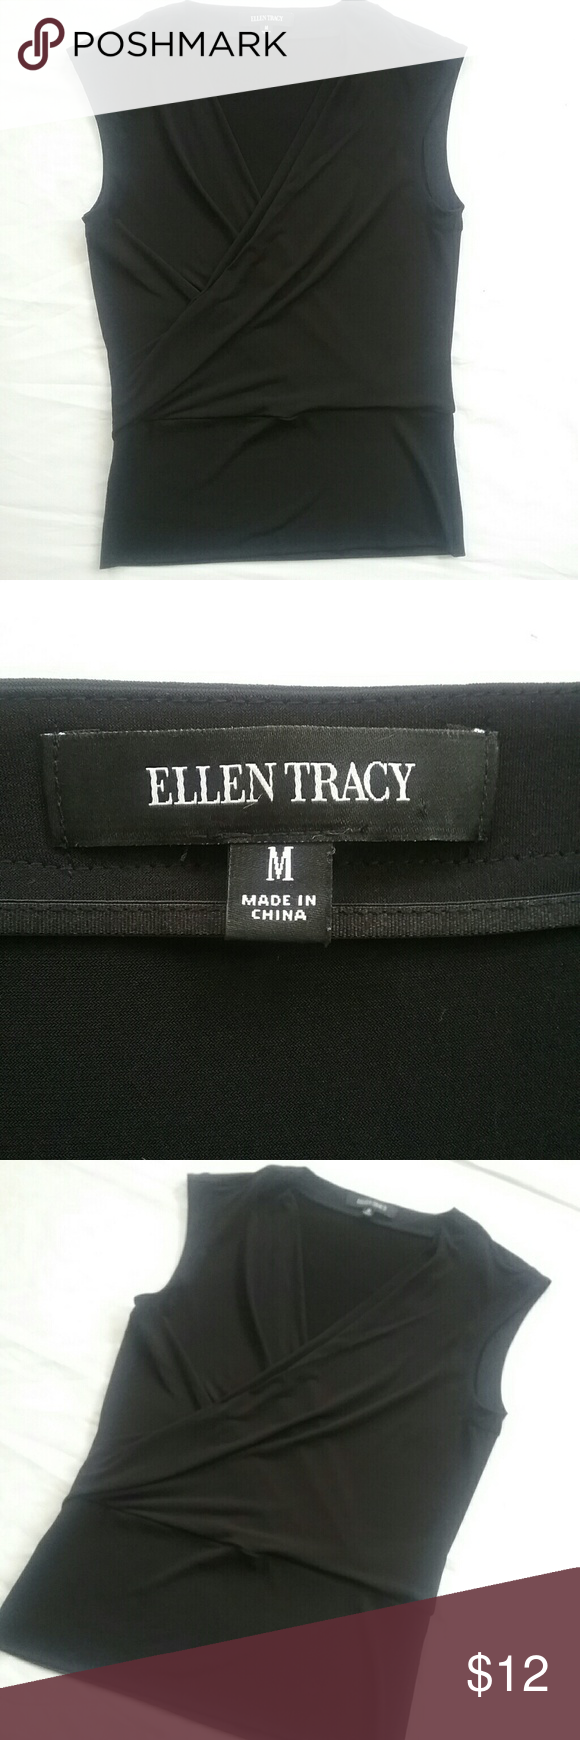 Ellen Tracy black work/office blouse sz medium Lightly used, sleeveless, im also in ebay as seller 10*ivy, lots more to choose from ellen tracy Tops